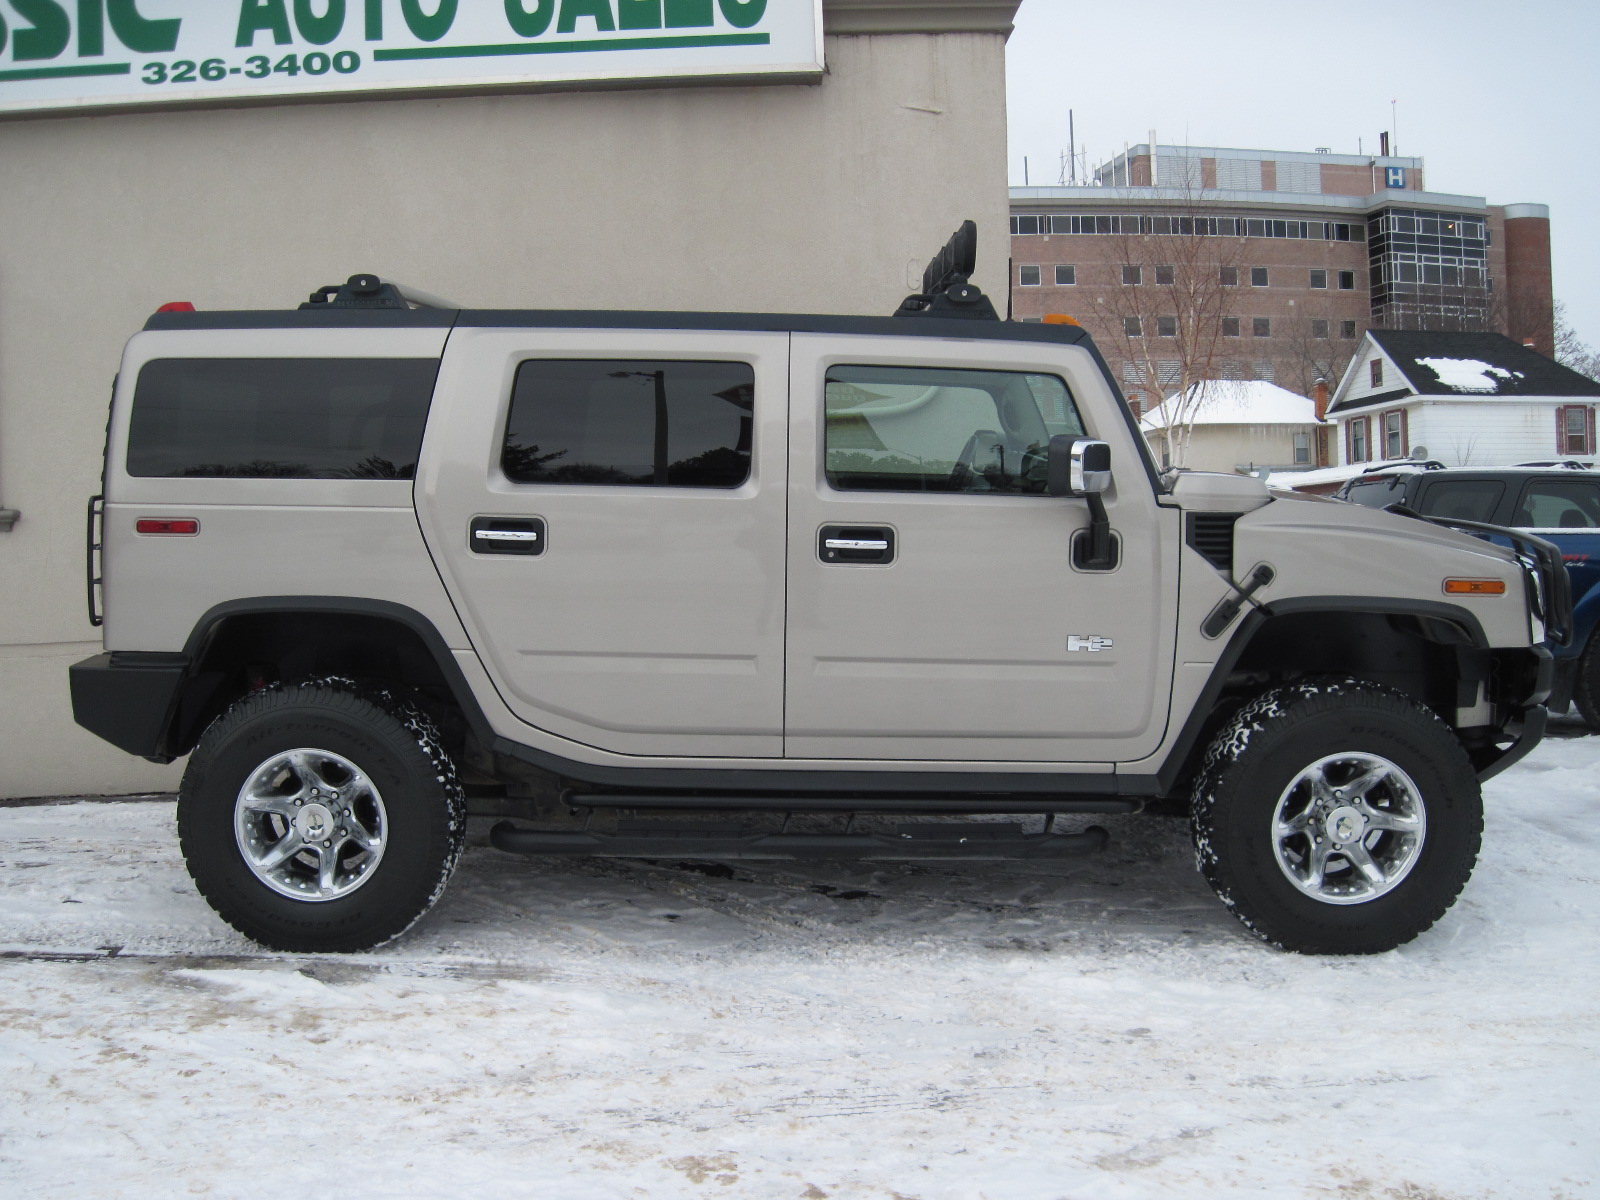 Used 2003 Hummer H2 in Orillia,ON